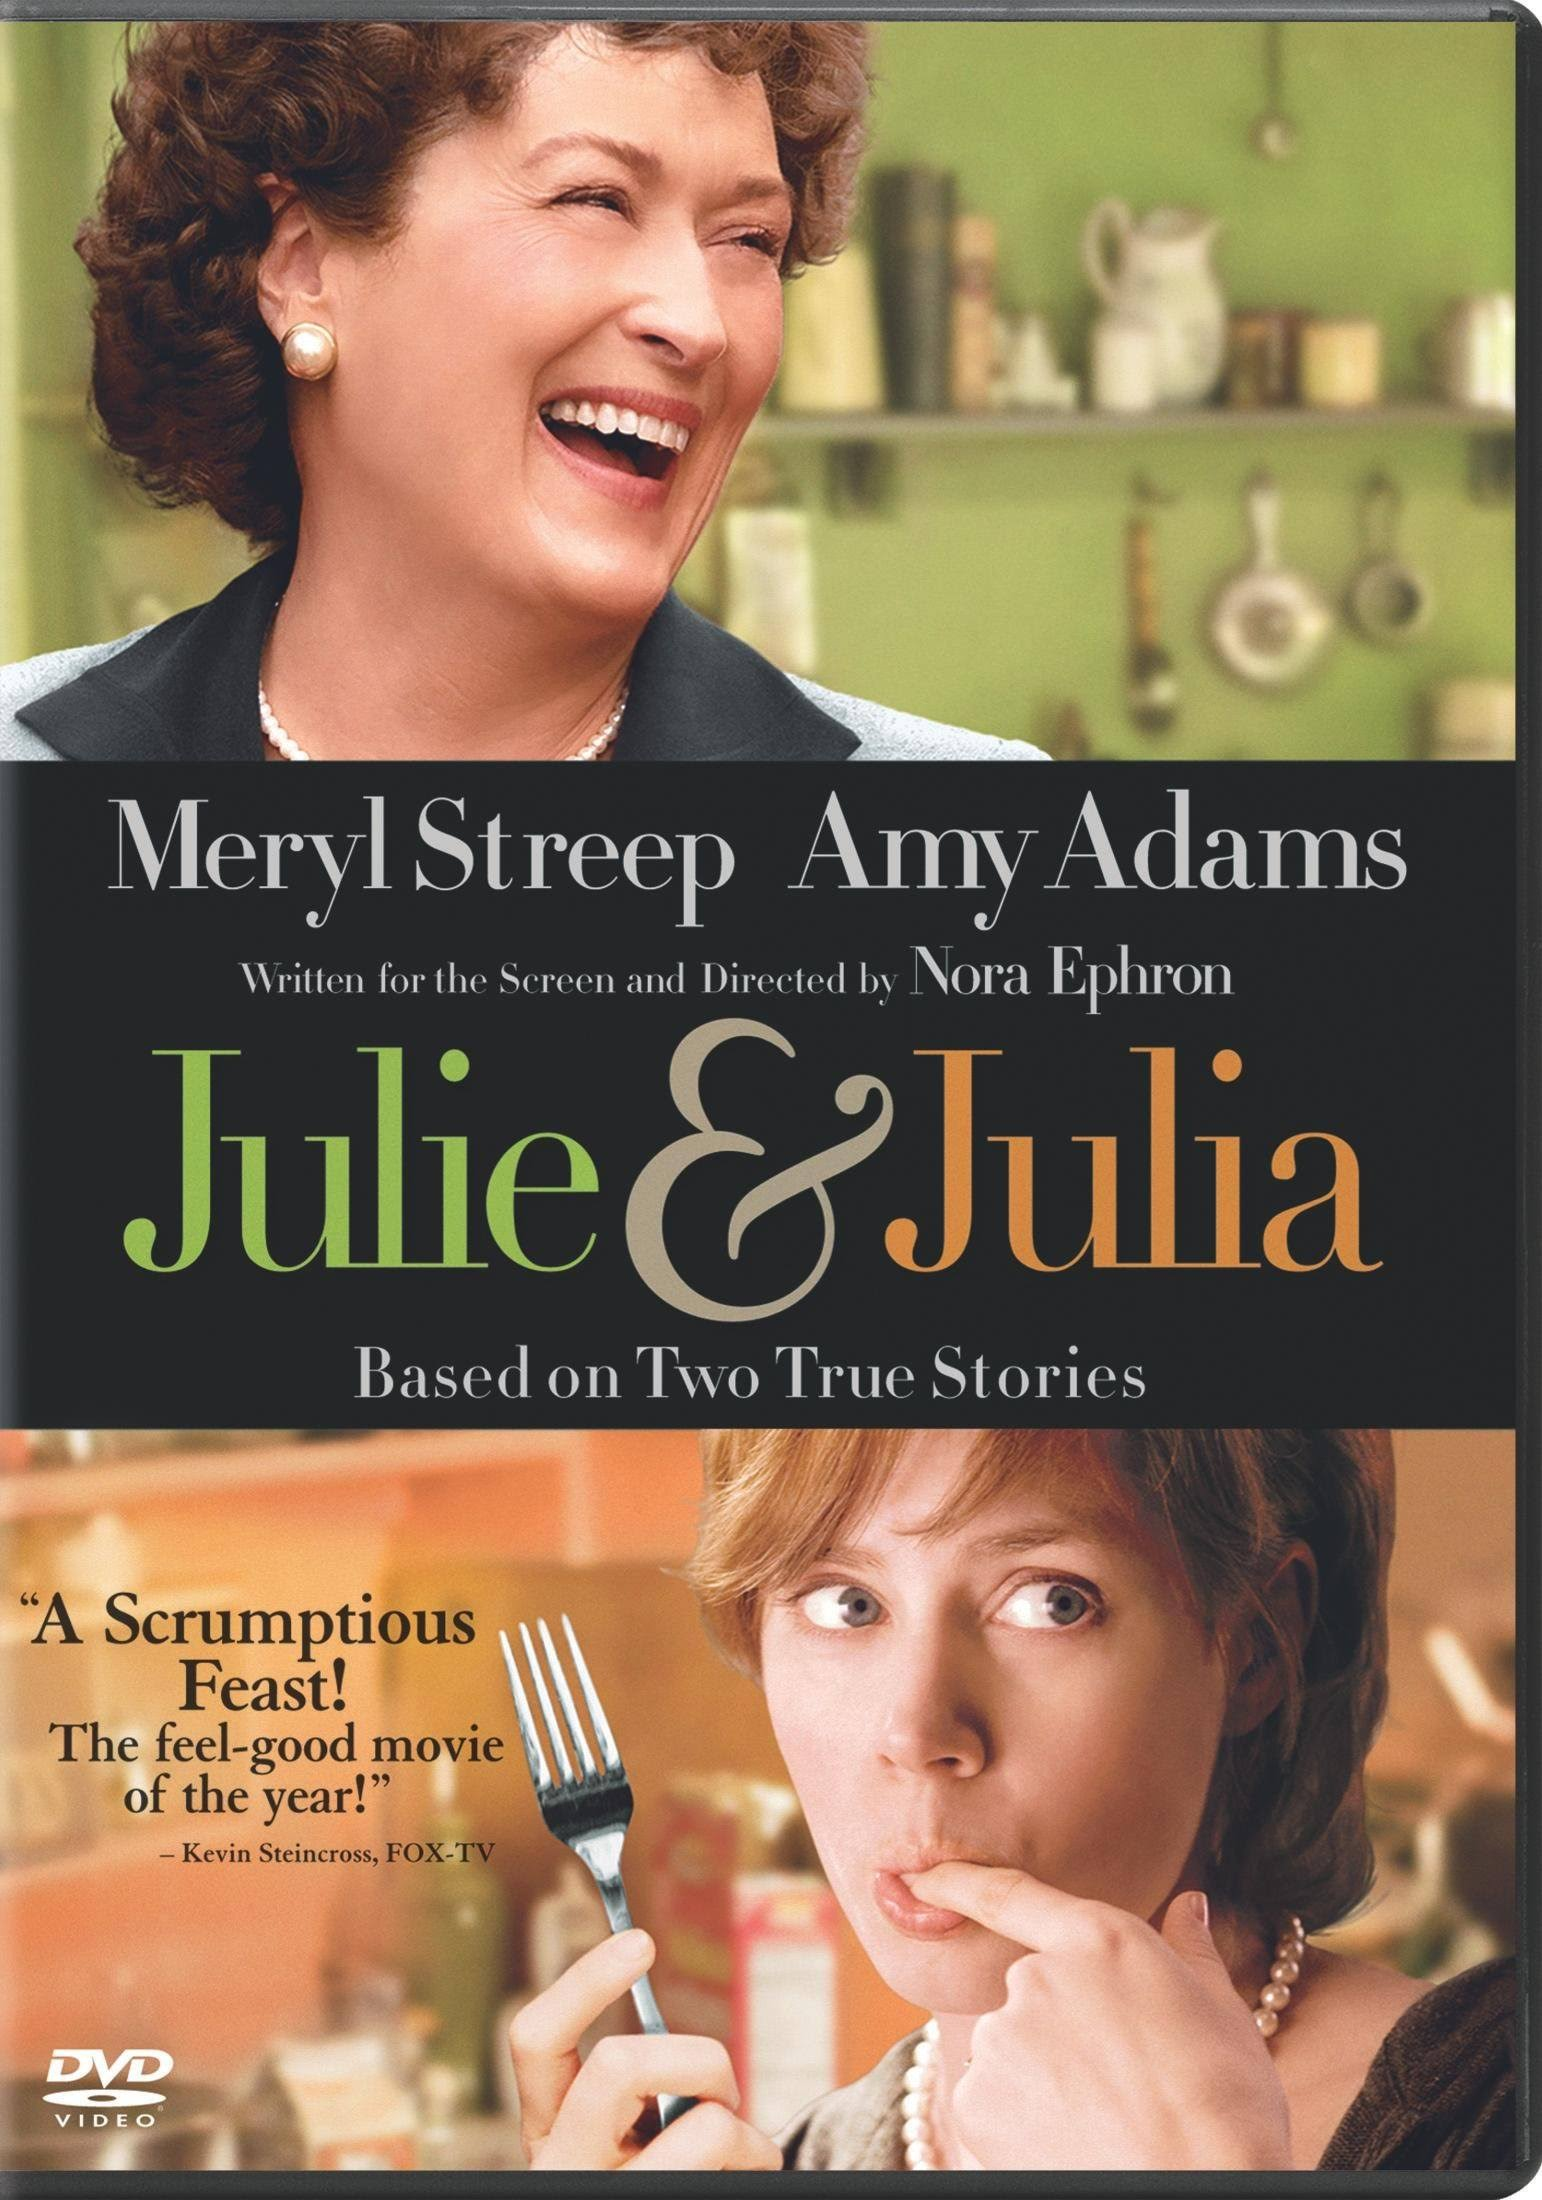 Julie & Julia DVD